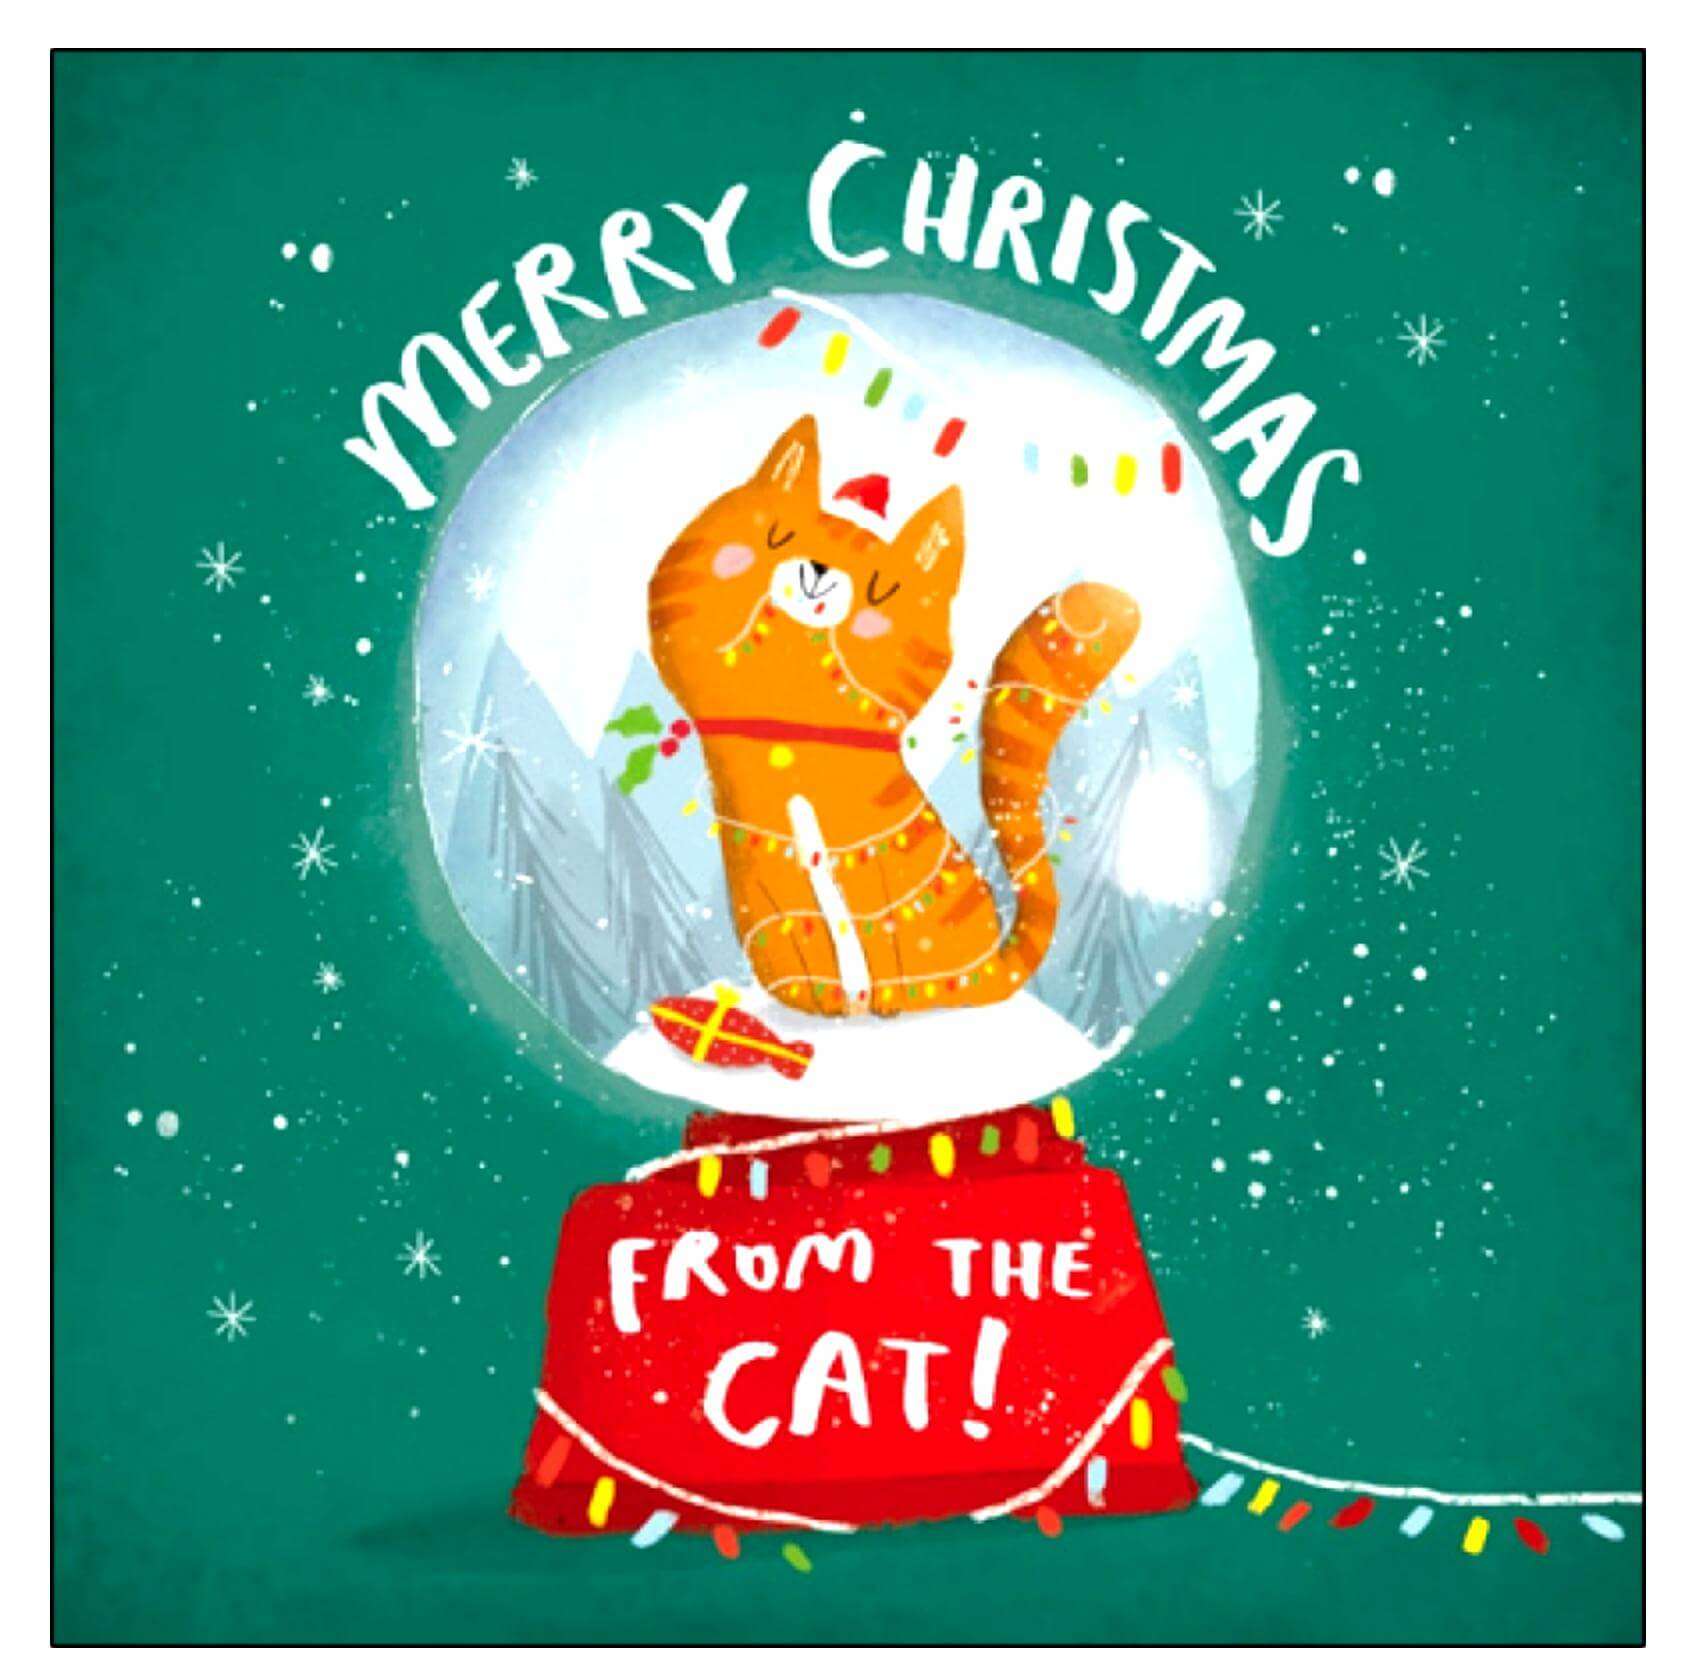 Merry Christmas from the Cat Glitter Card